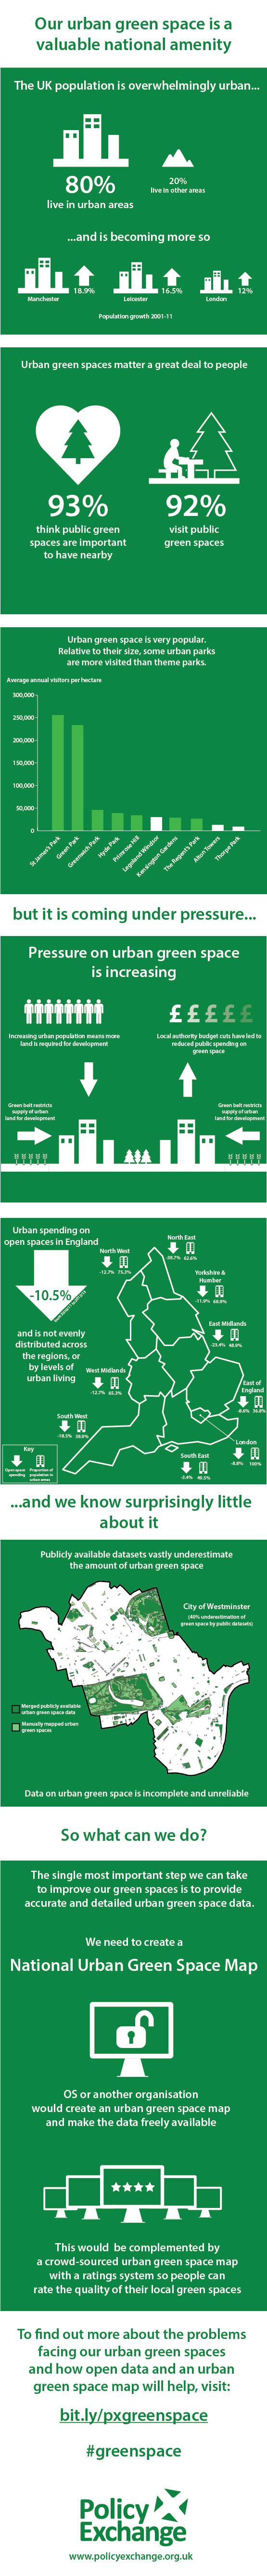 Infographic: Our Urban Green Space A Caluable National Amenity